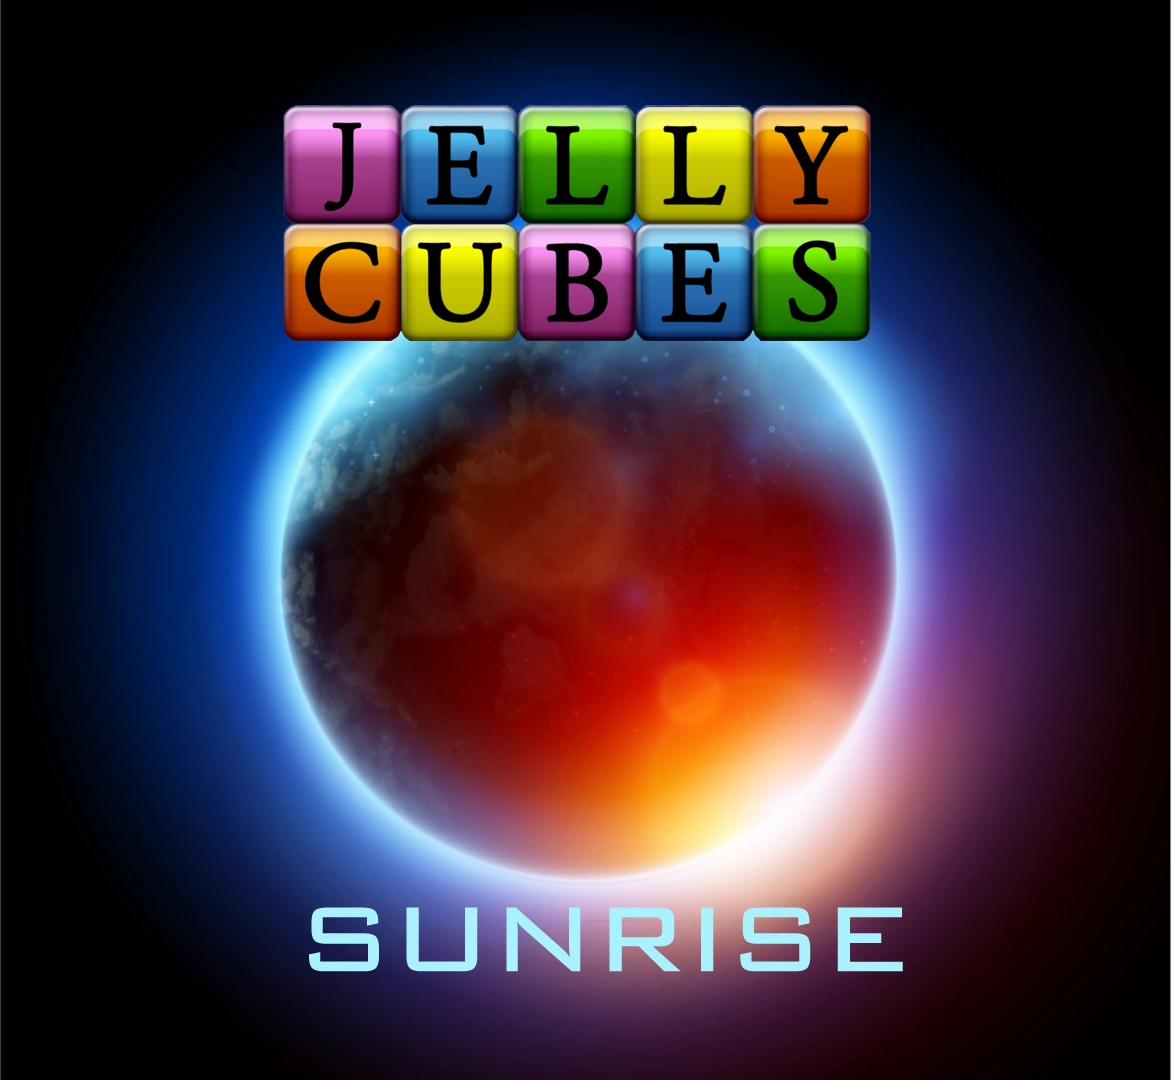 Jelly Cubes, Puzzle Game for iOS